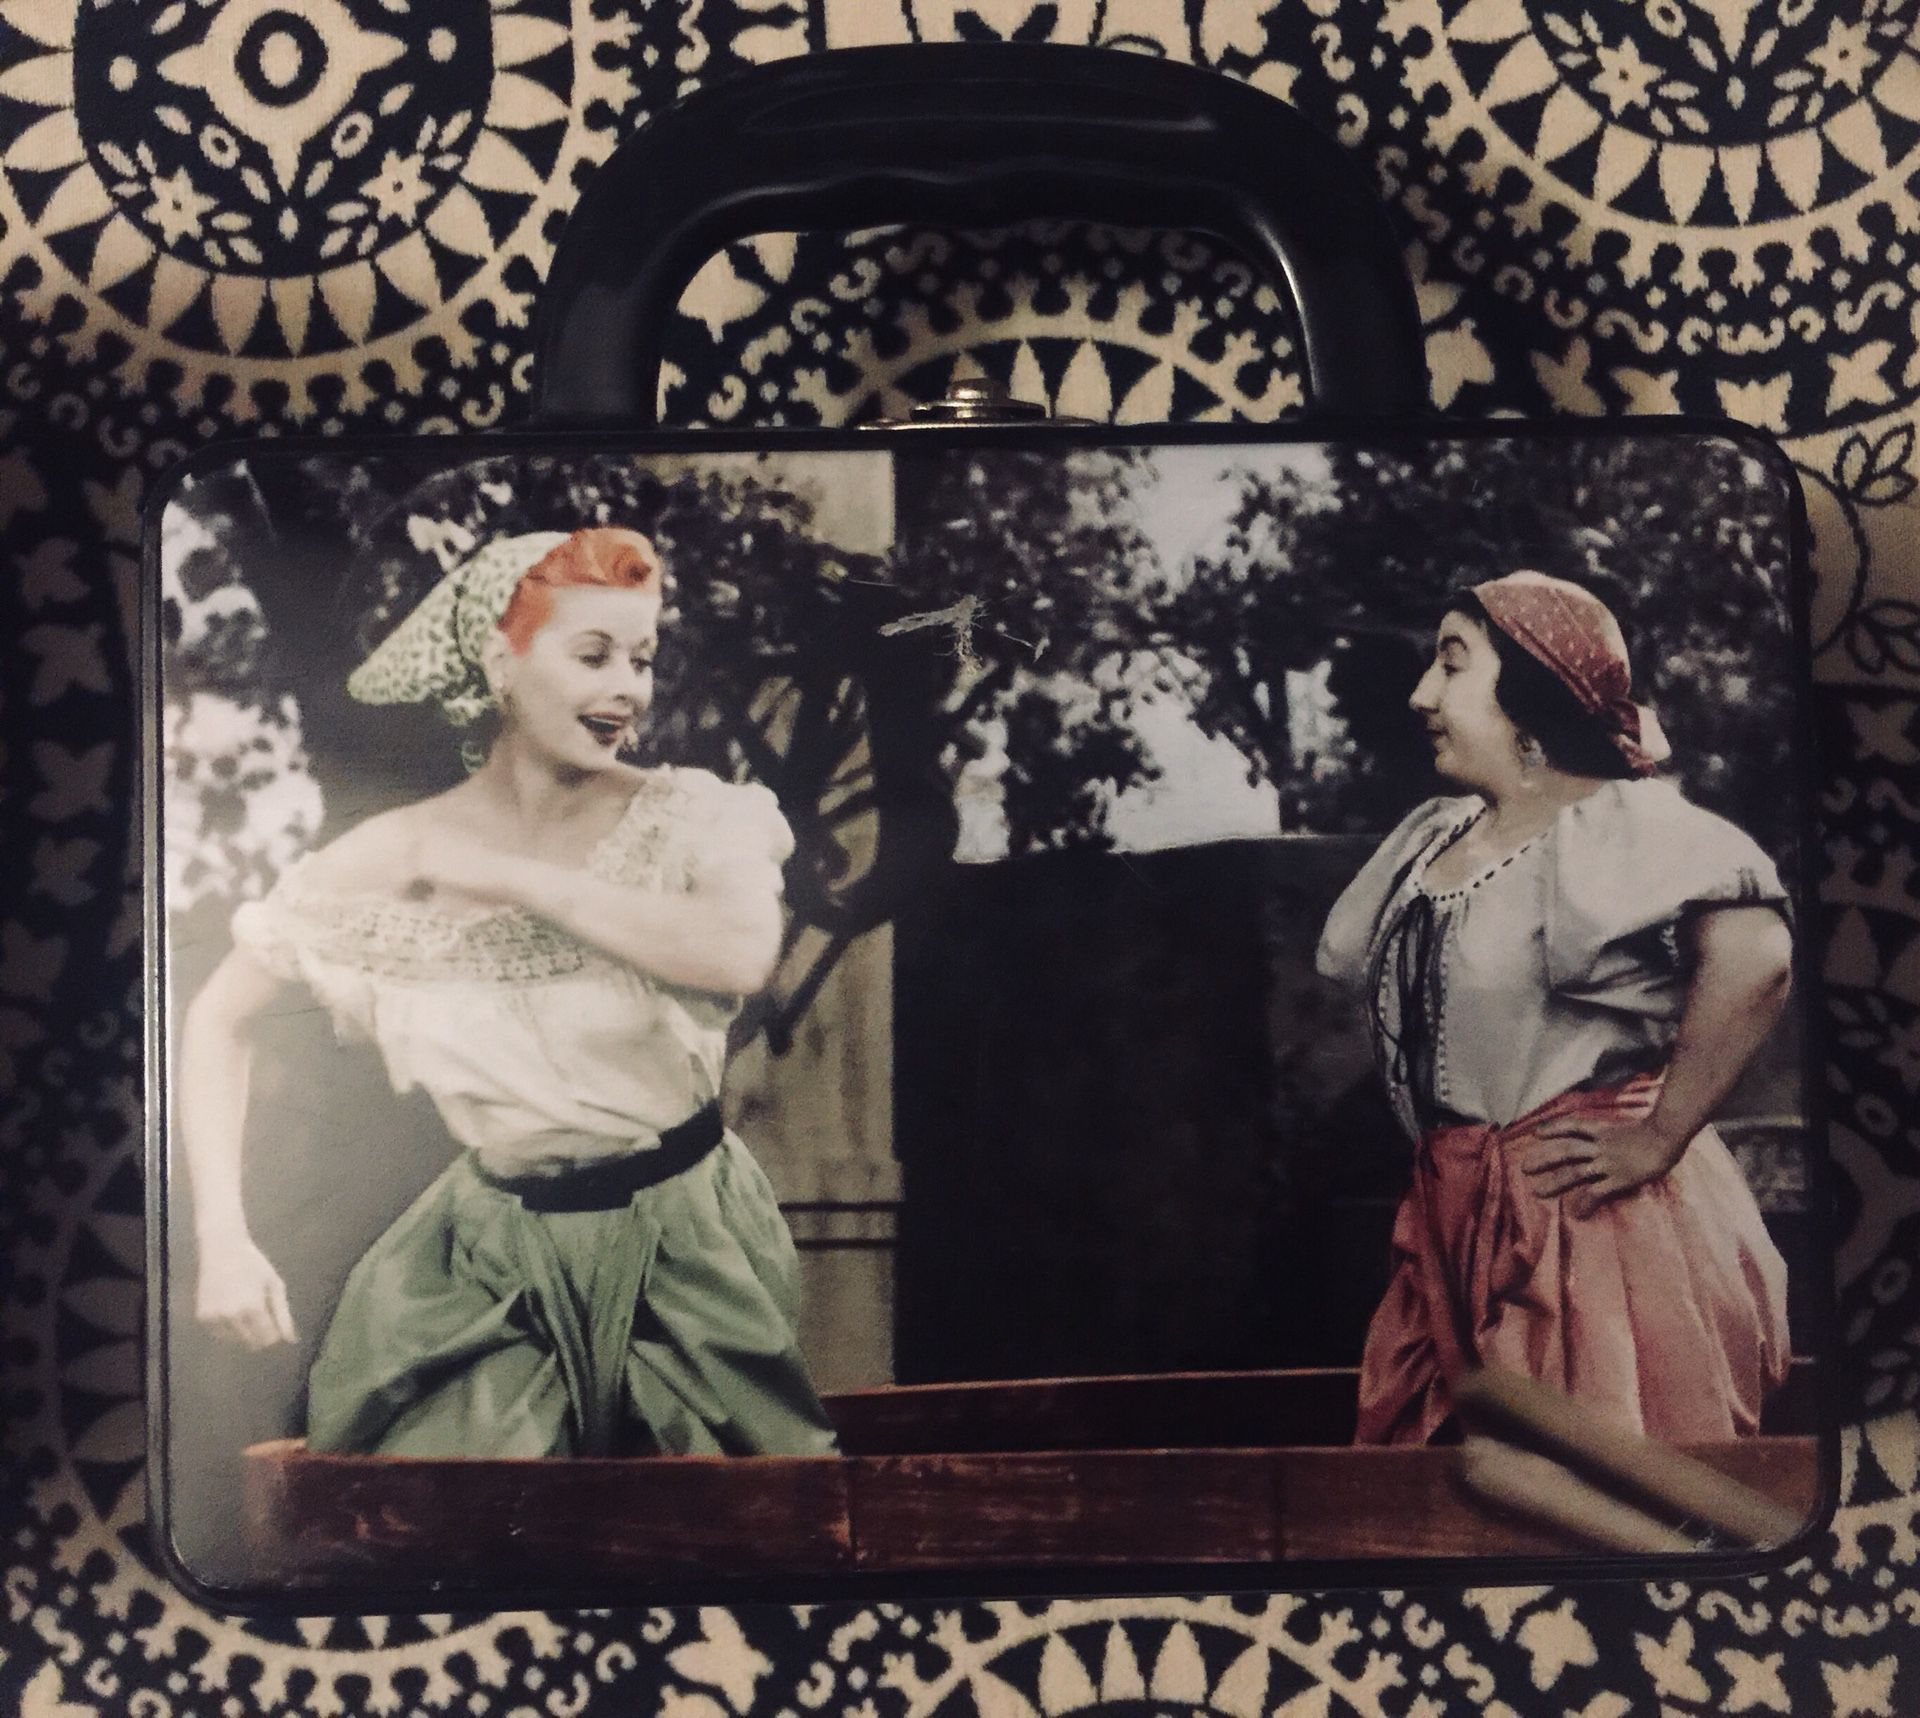 I Love Lucy lunch box. (About 3/4 size of regular metal lunch boxes)